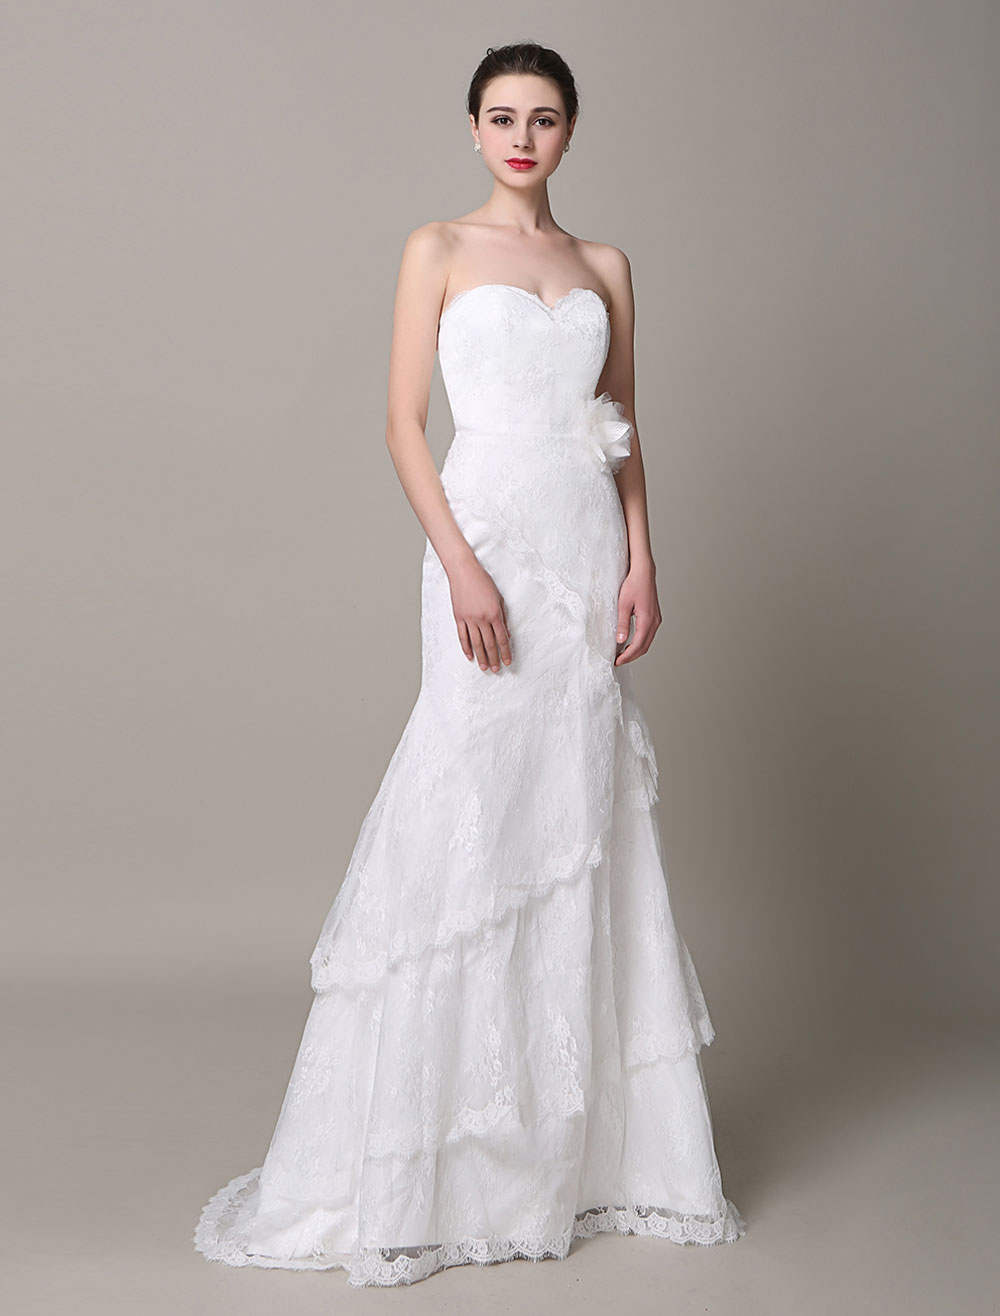 Ivory Wedding Dress Strapless Tiered Flowers Lace Wedding Gown